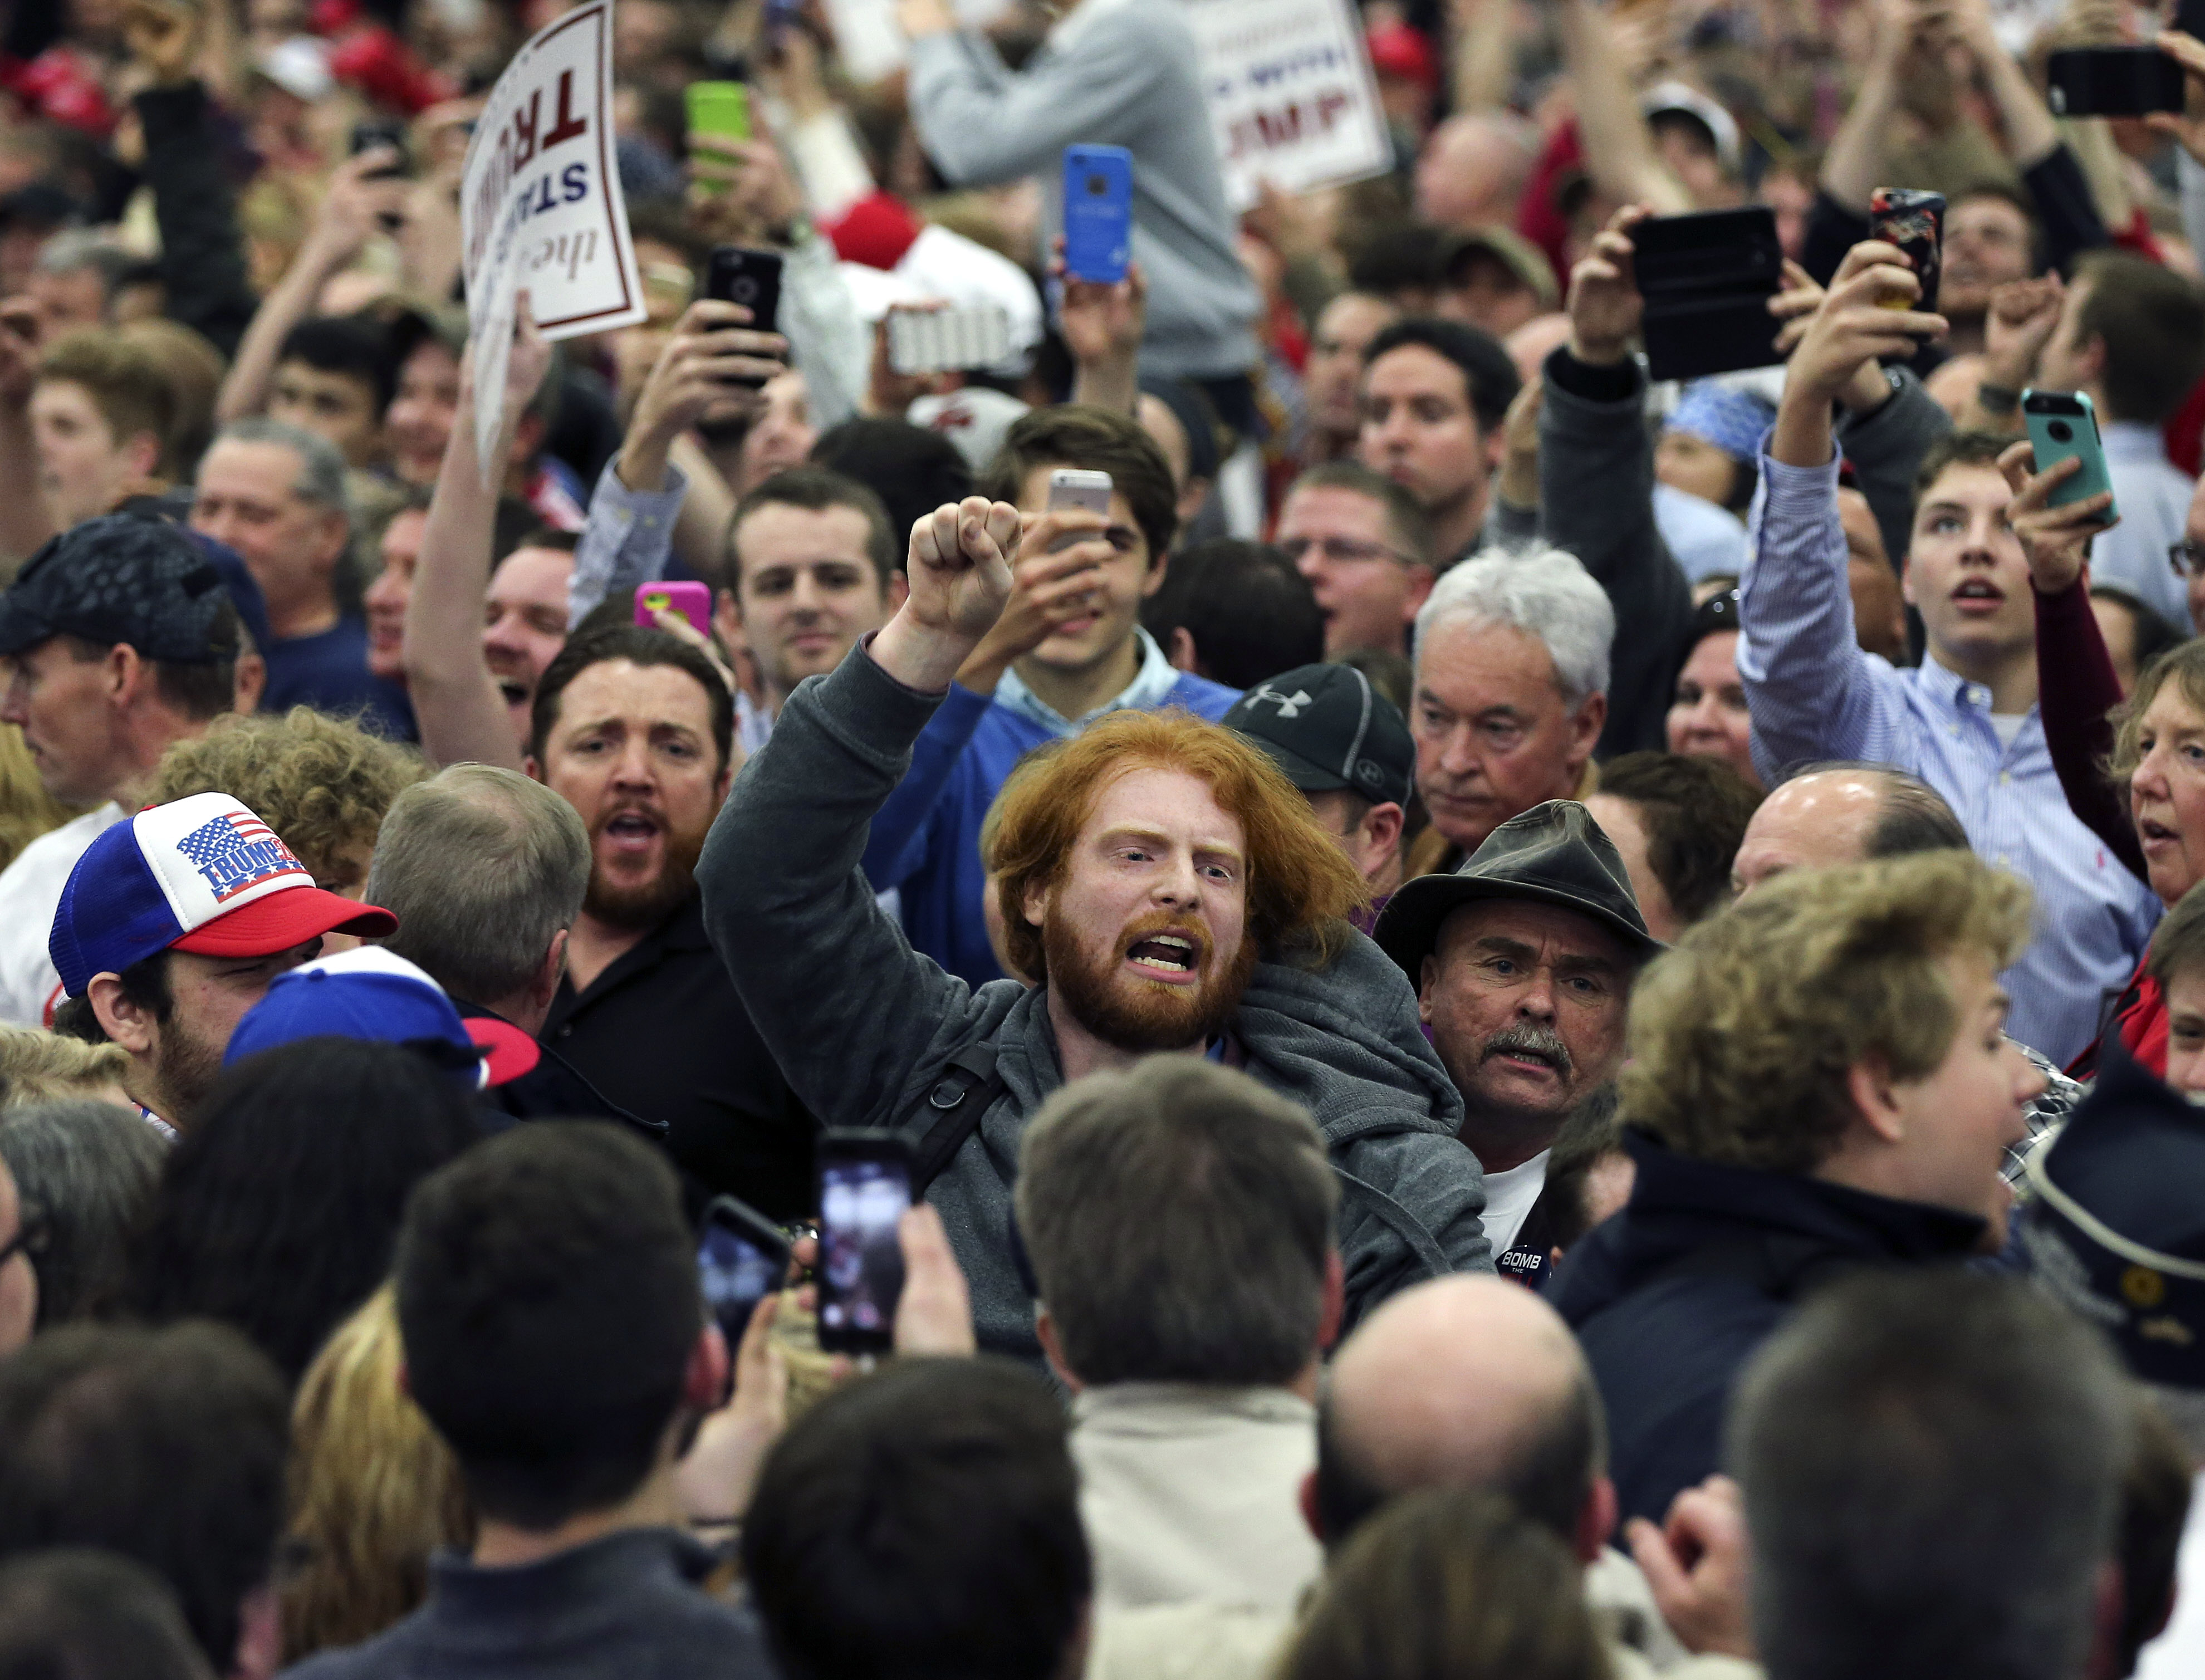 A protester is escorted out of a rally on March 1, 2016 for Republican Presidential candidate Donald Trump in Louisville, Ky.